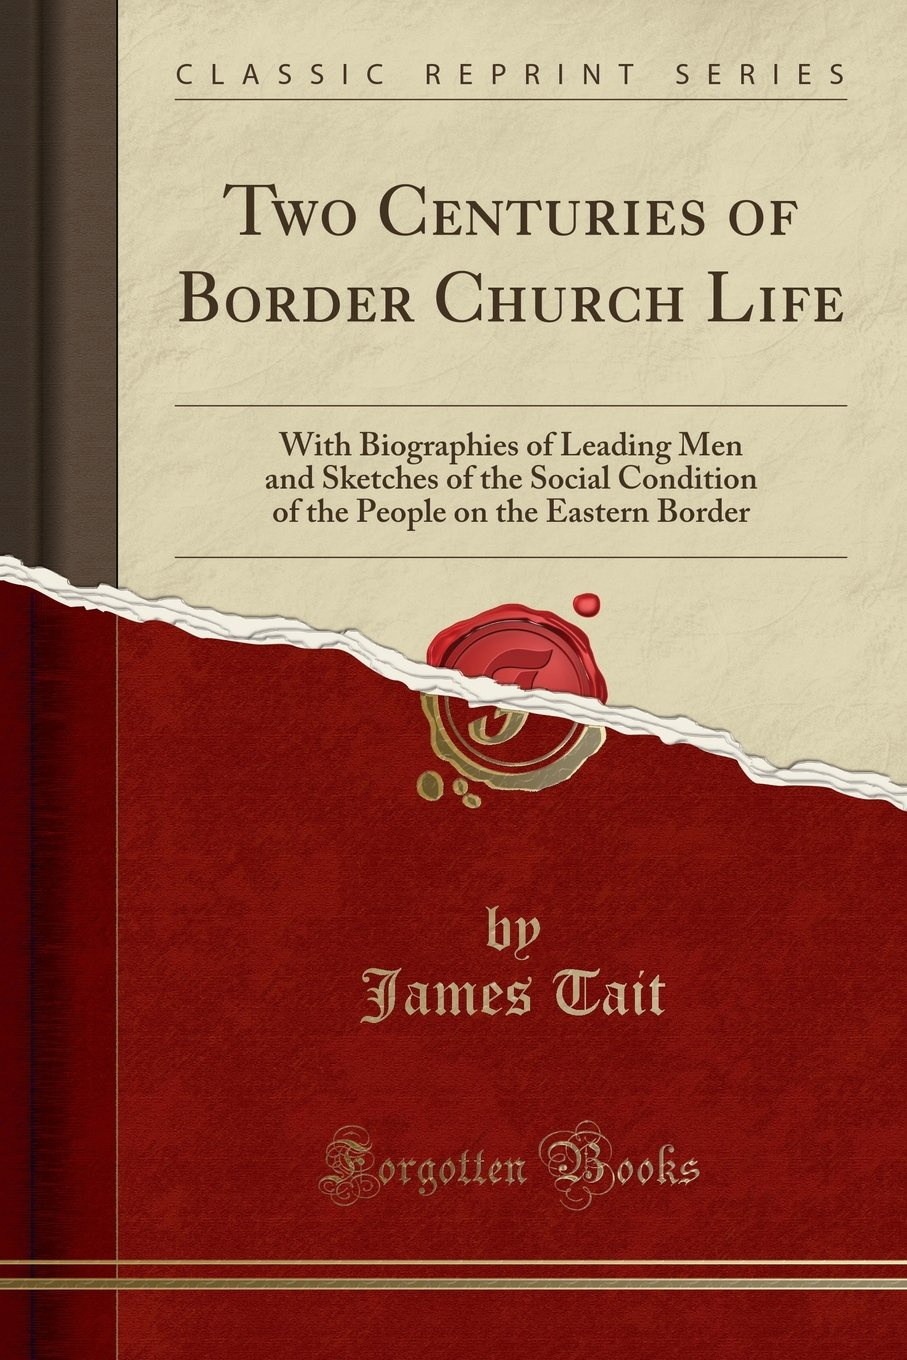 Download Two Centuries of Border Church Life: With Biographies of Leading Men and Sketches of the Social Condition of the People on the Eastern Border (Classic Reprint) ebook